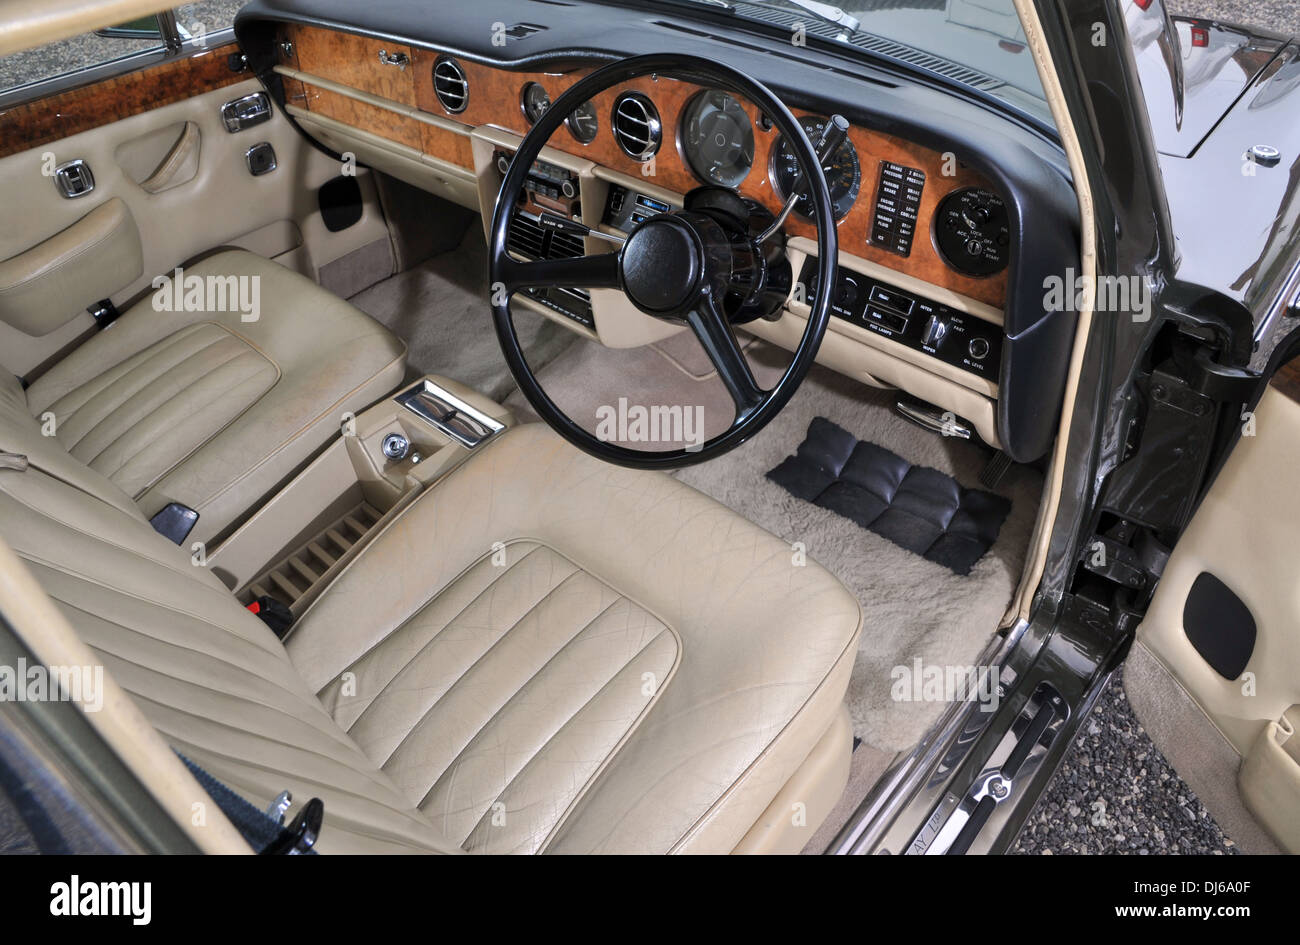 Bentley Classic Car Interior High Resolution Stock Photography And Images Alamy